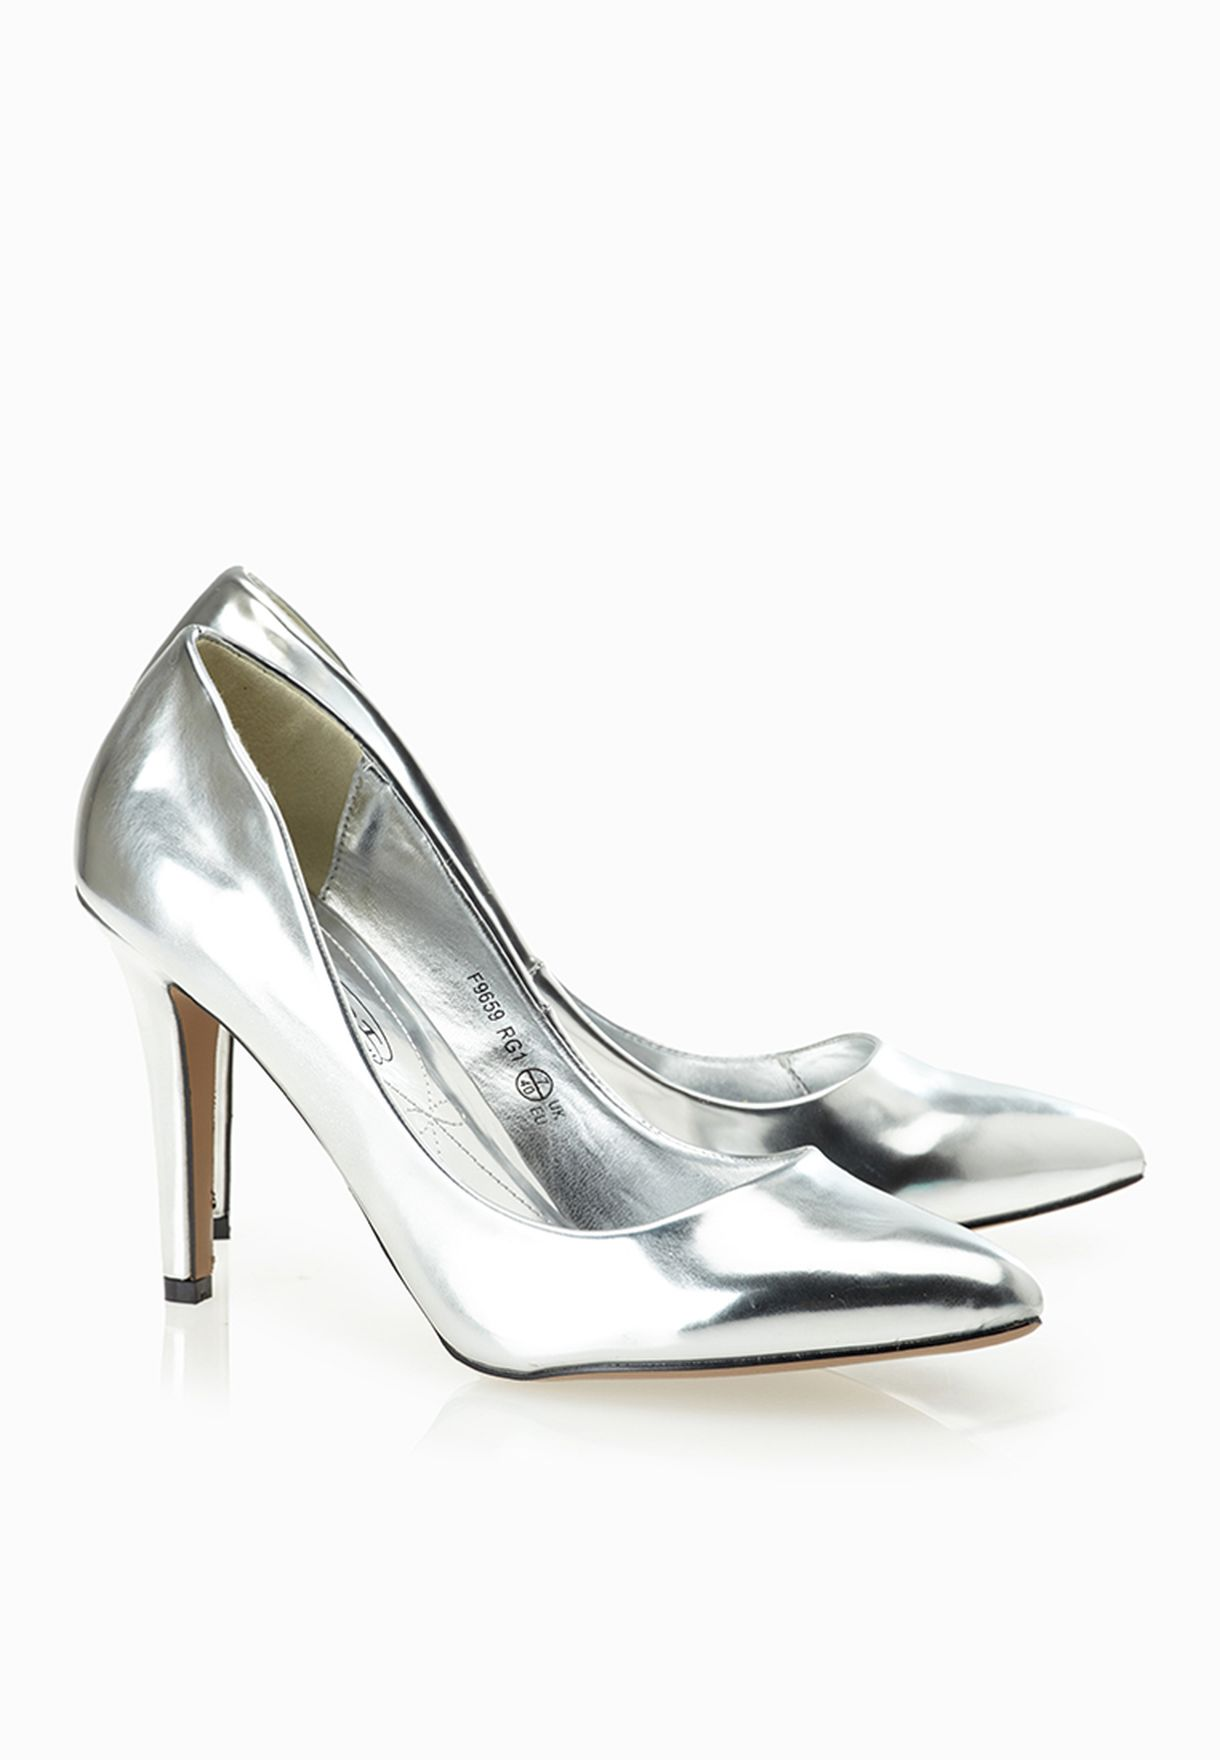 Ladies Slip On Pointed Toe Silver Court Shoes Great Shoes! F9659